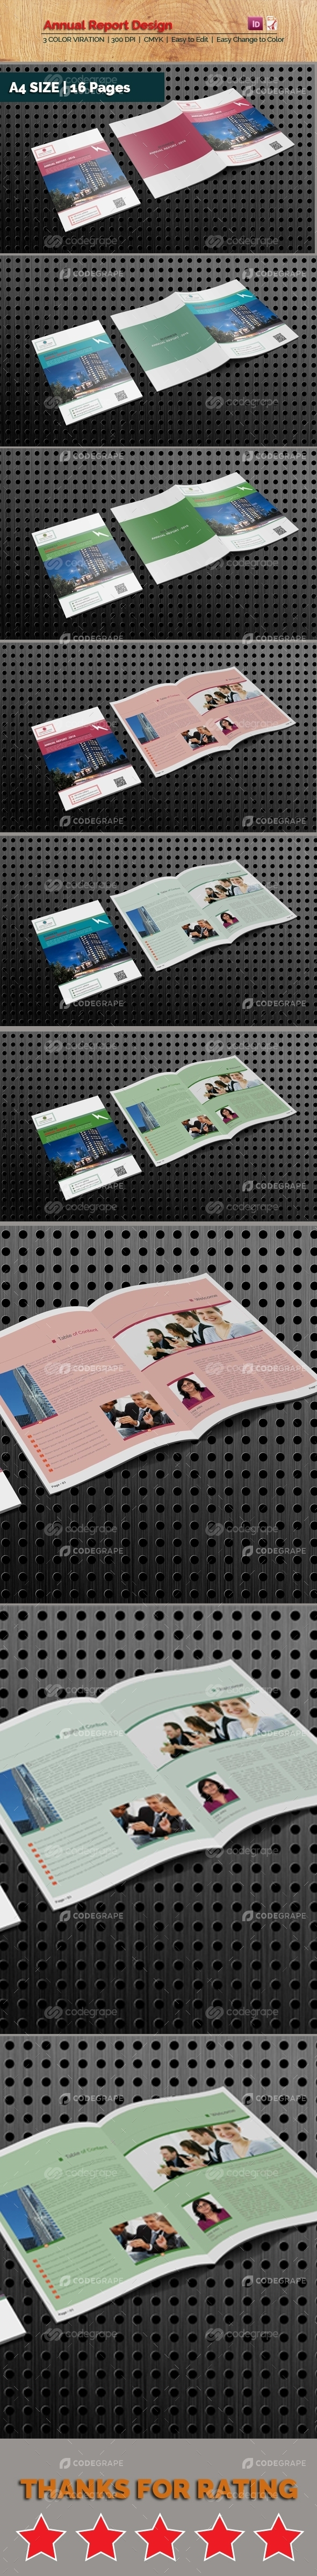 Annual Reports Template